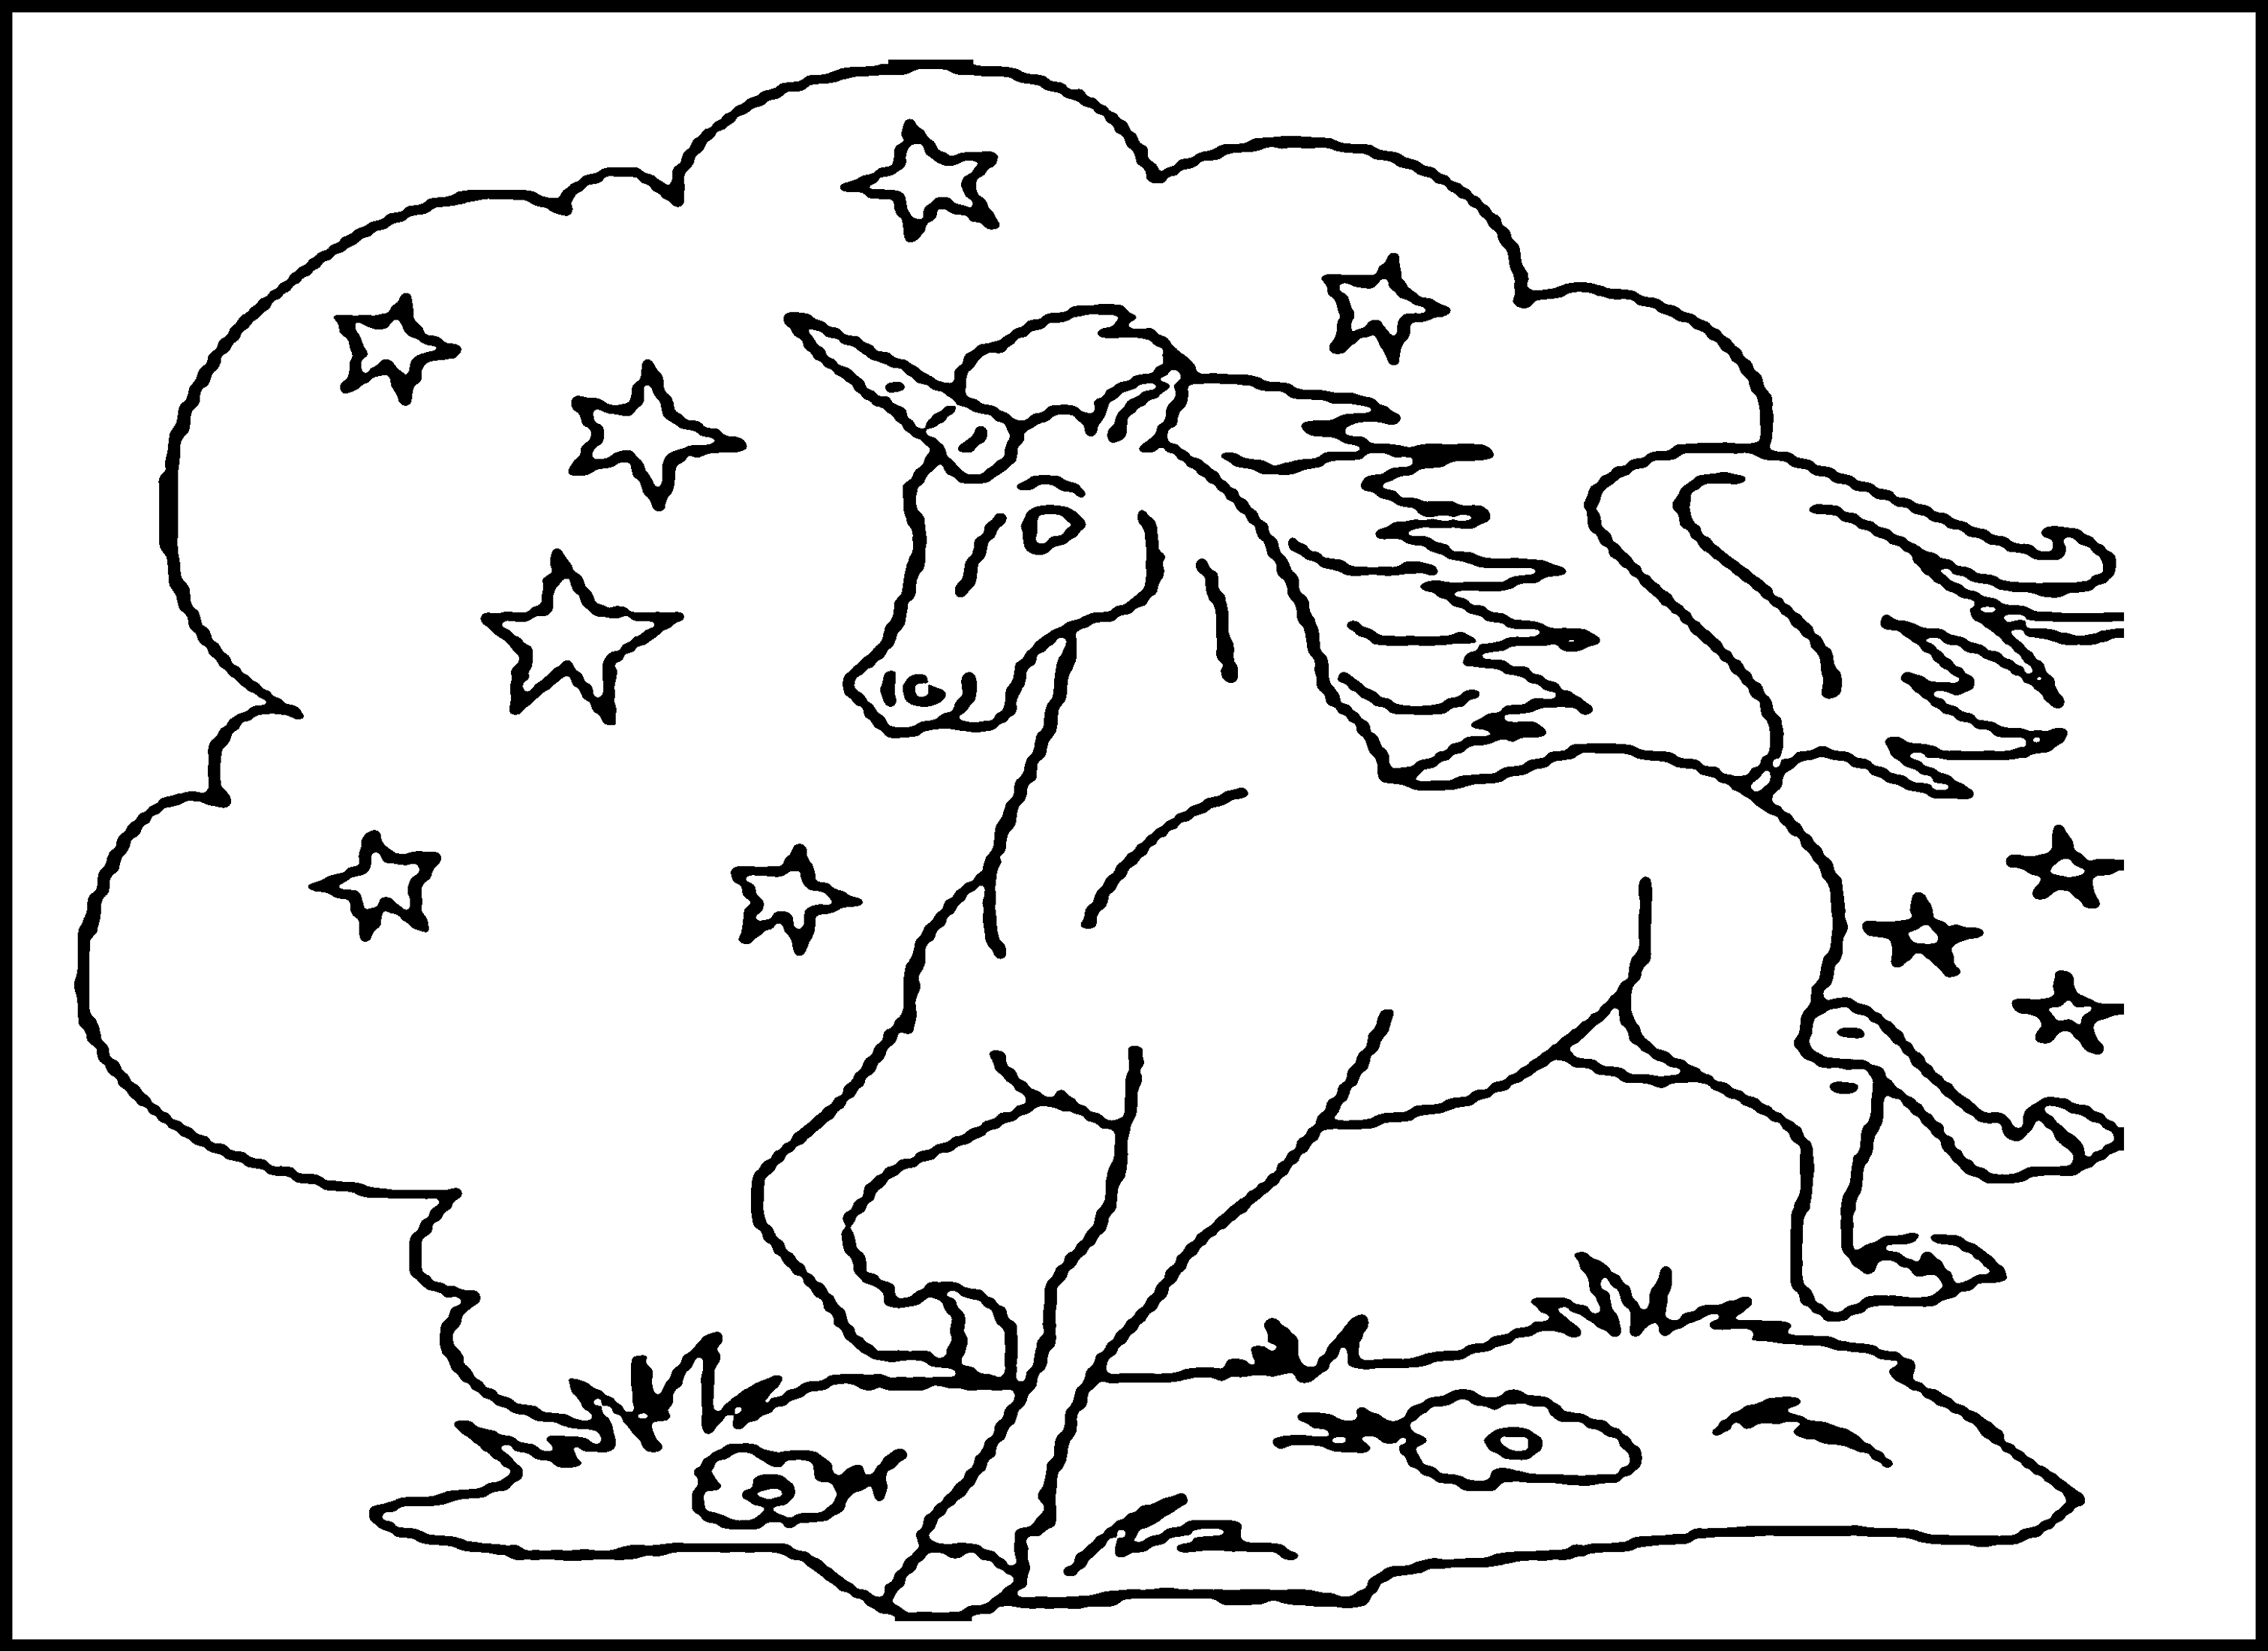 Coloring Pages Printable for Children | Activity Shelter